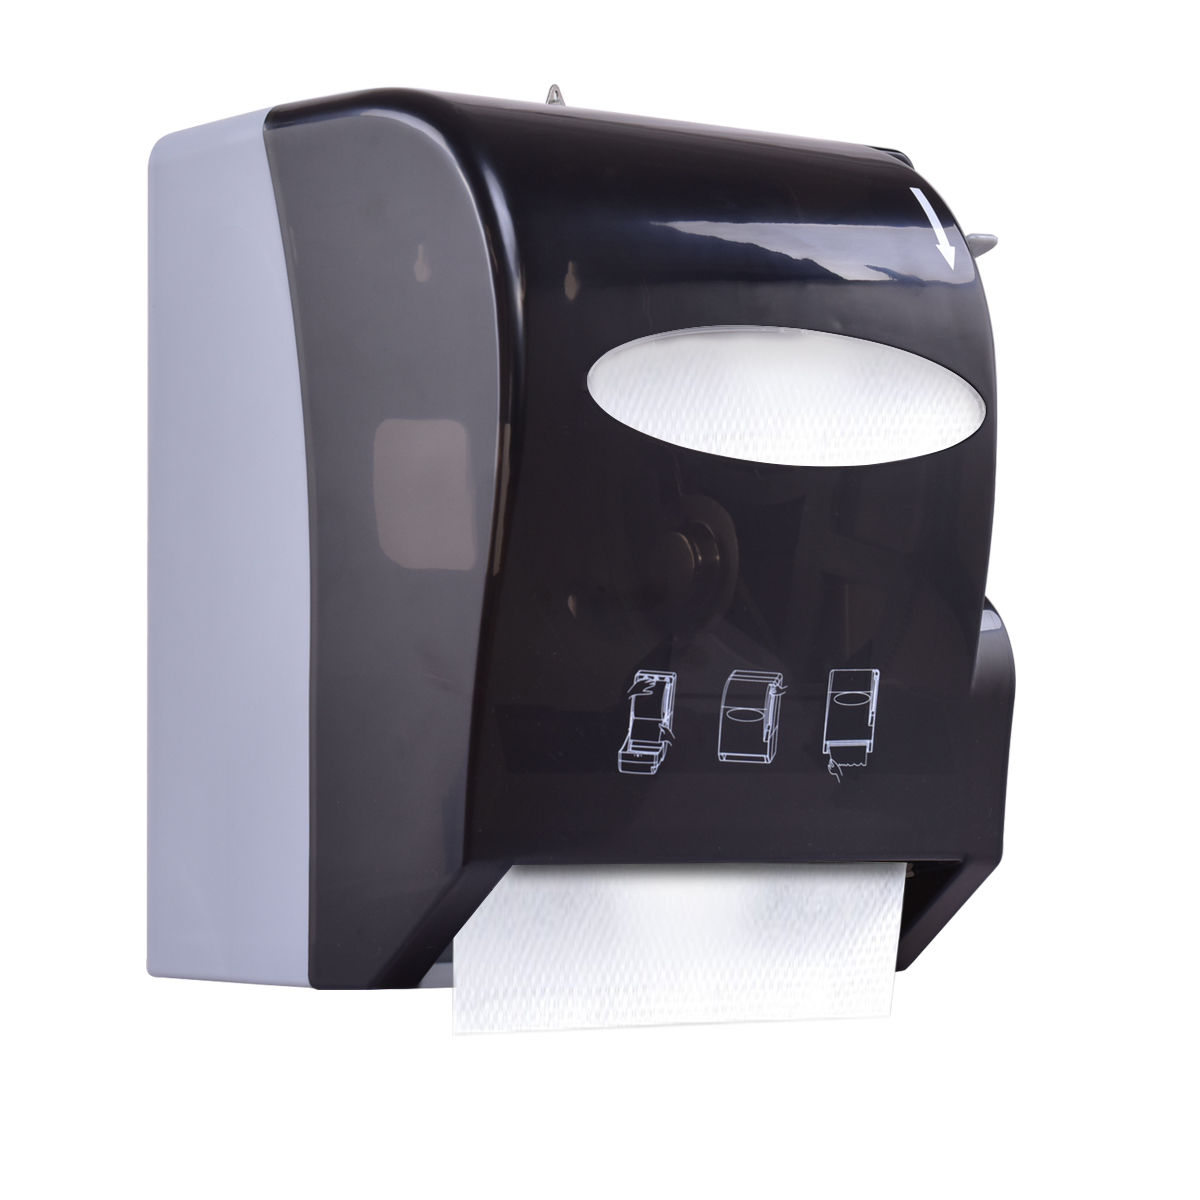 Costway Roll Paper Towel Dispenser Wall Mount Heavy Duty Commercial Home Use Black